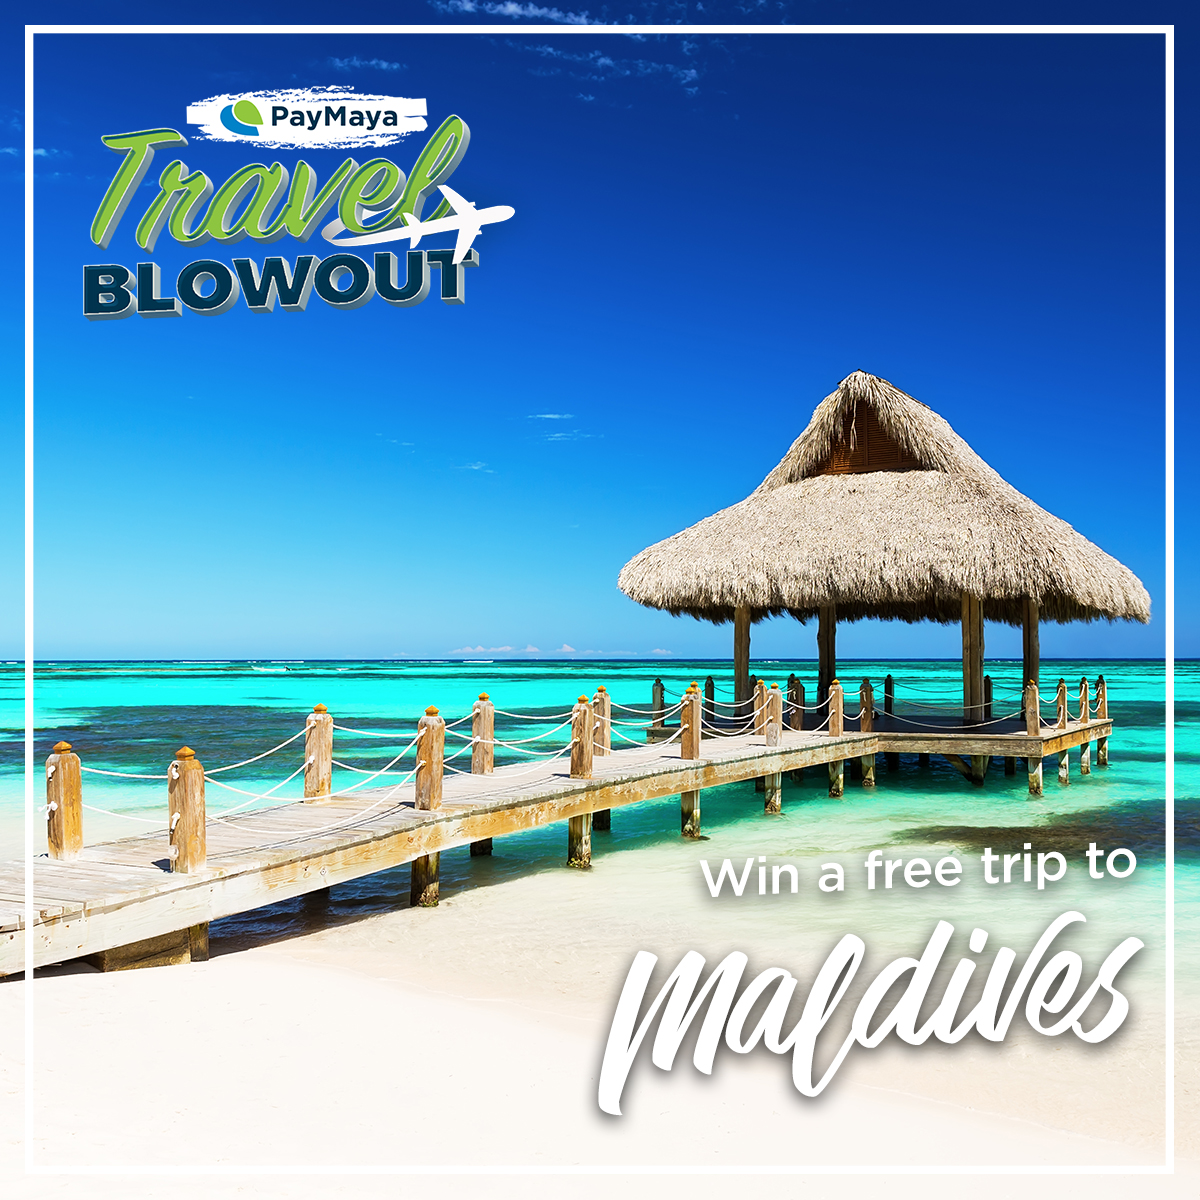 PayMaya_TravelBlowout_Maldives